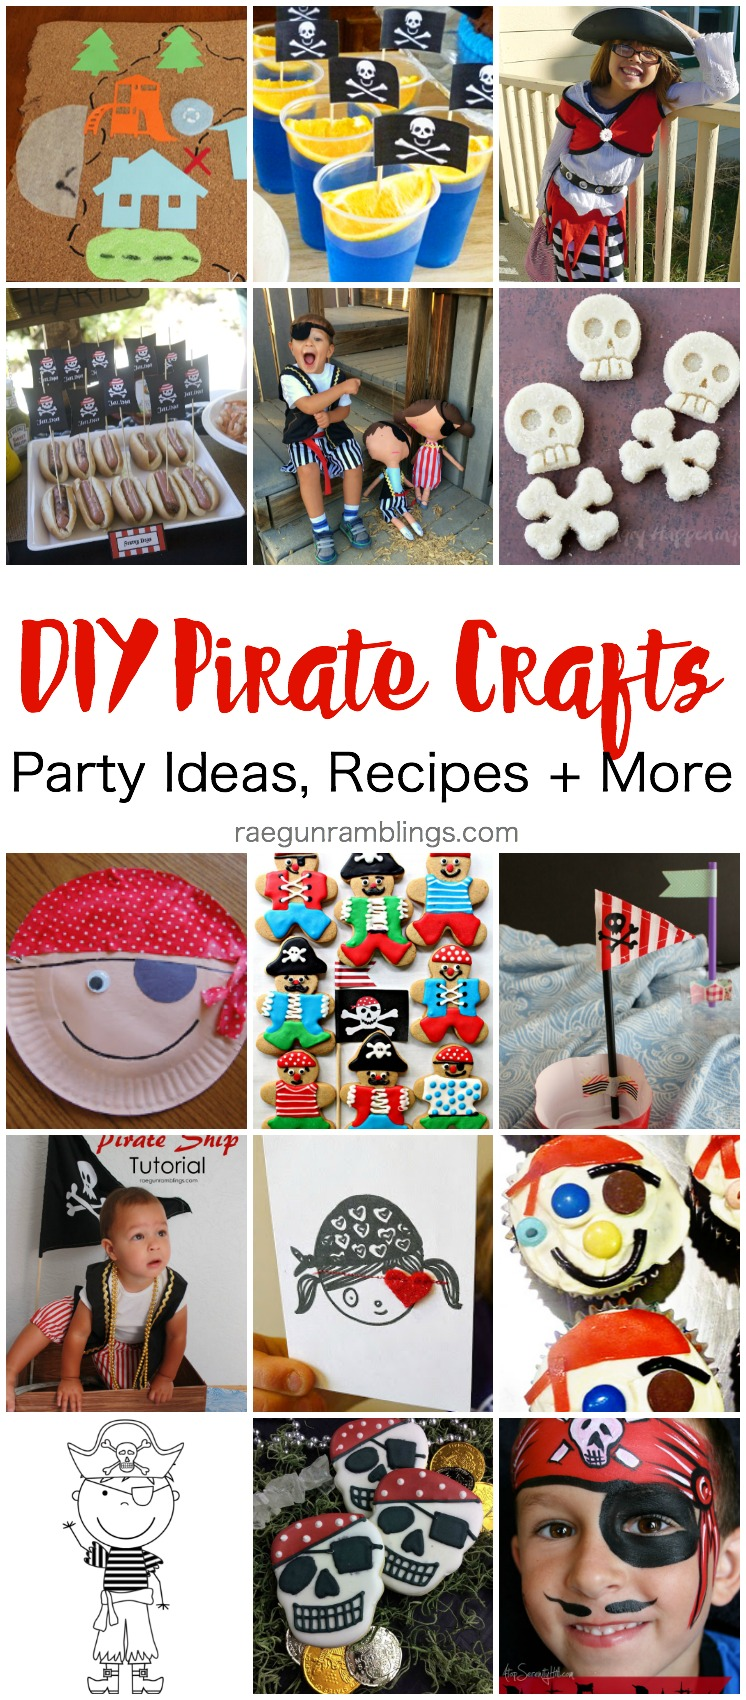 DIY Pirate crafts, party ideas, recipes, kid costumes and more